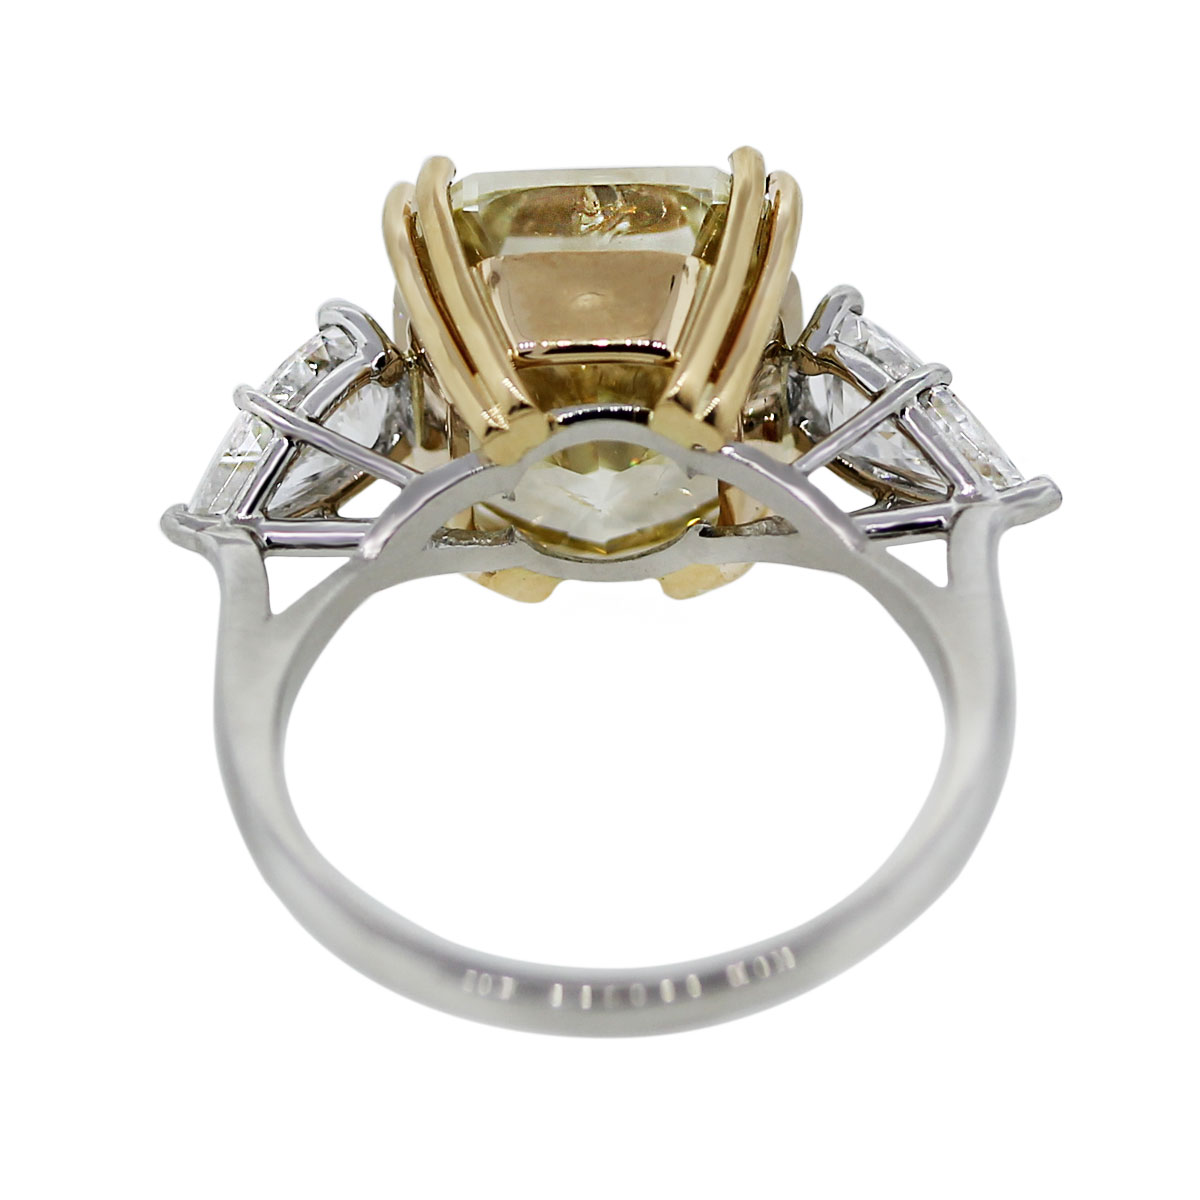 Pictures of yellow diamond engagement rings Grand Diamonds:Engagement Rings Diamonds